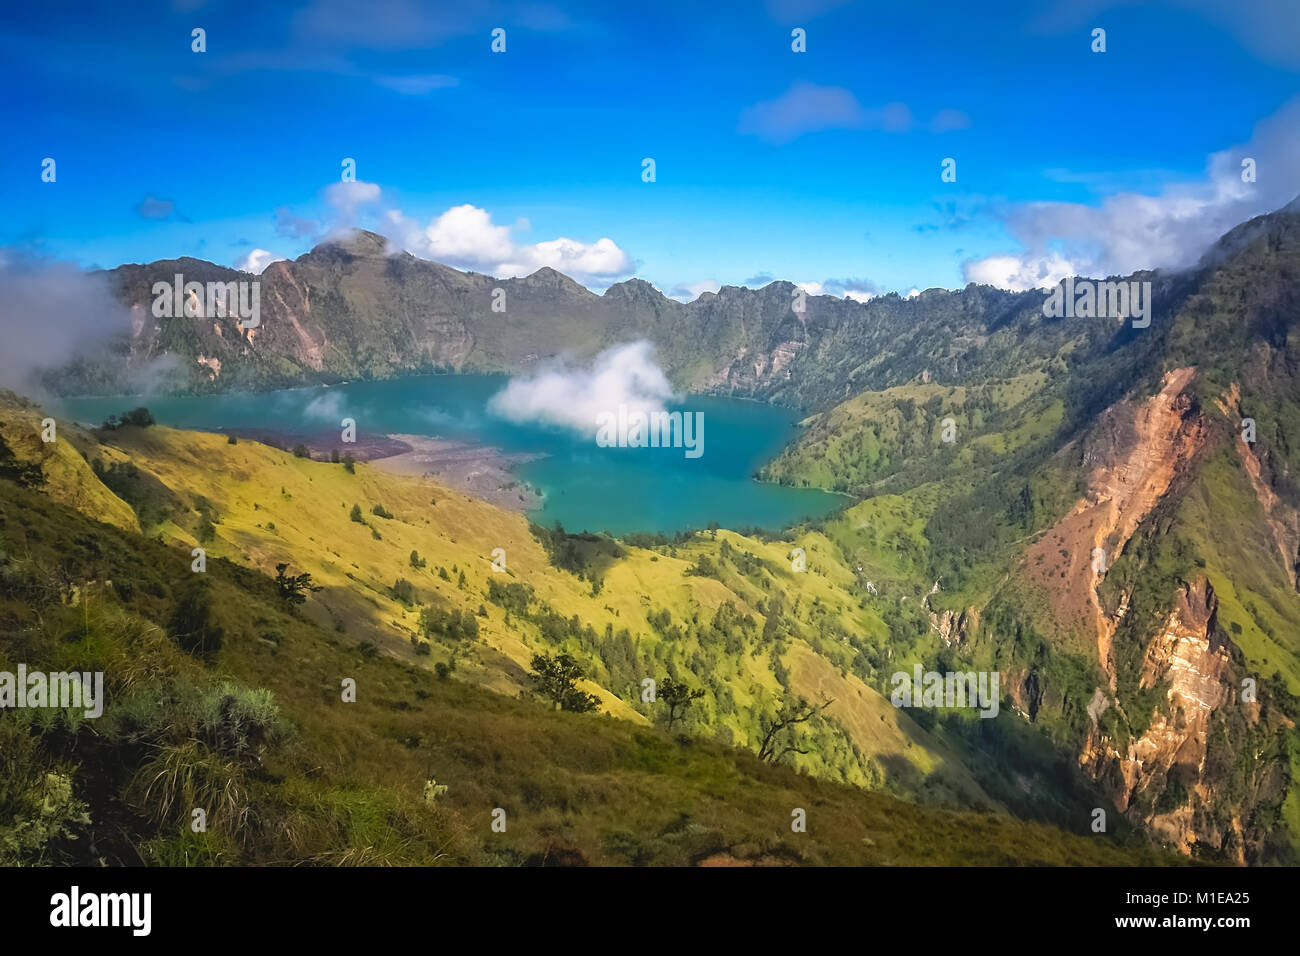 Torquise lake inside the caldera of Gunung Rinjani volcano in Lombok island,  Indonesia - Stock Image